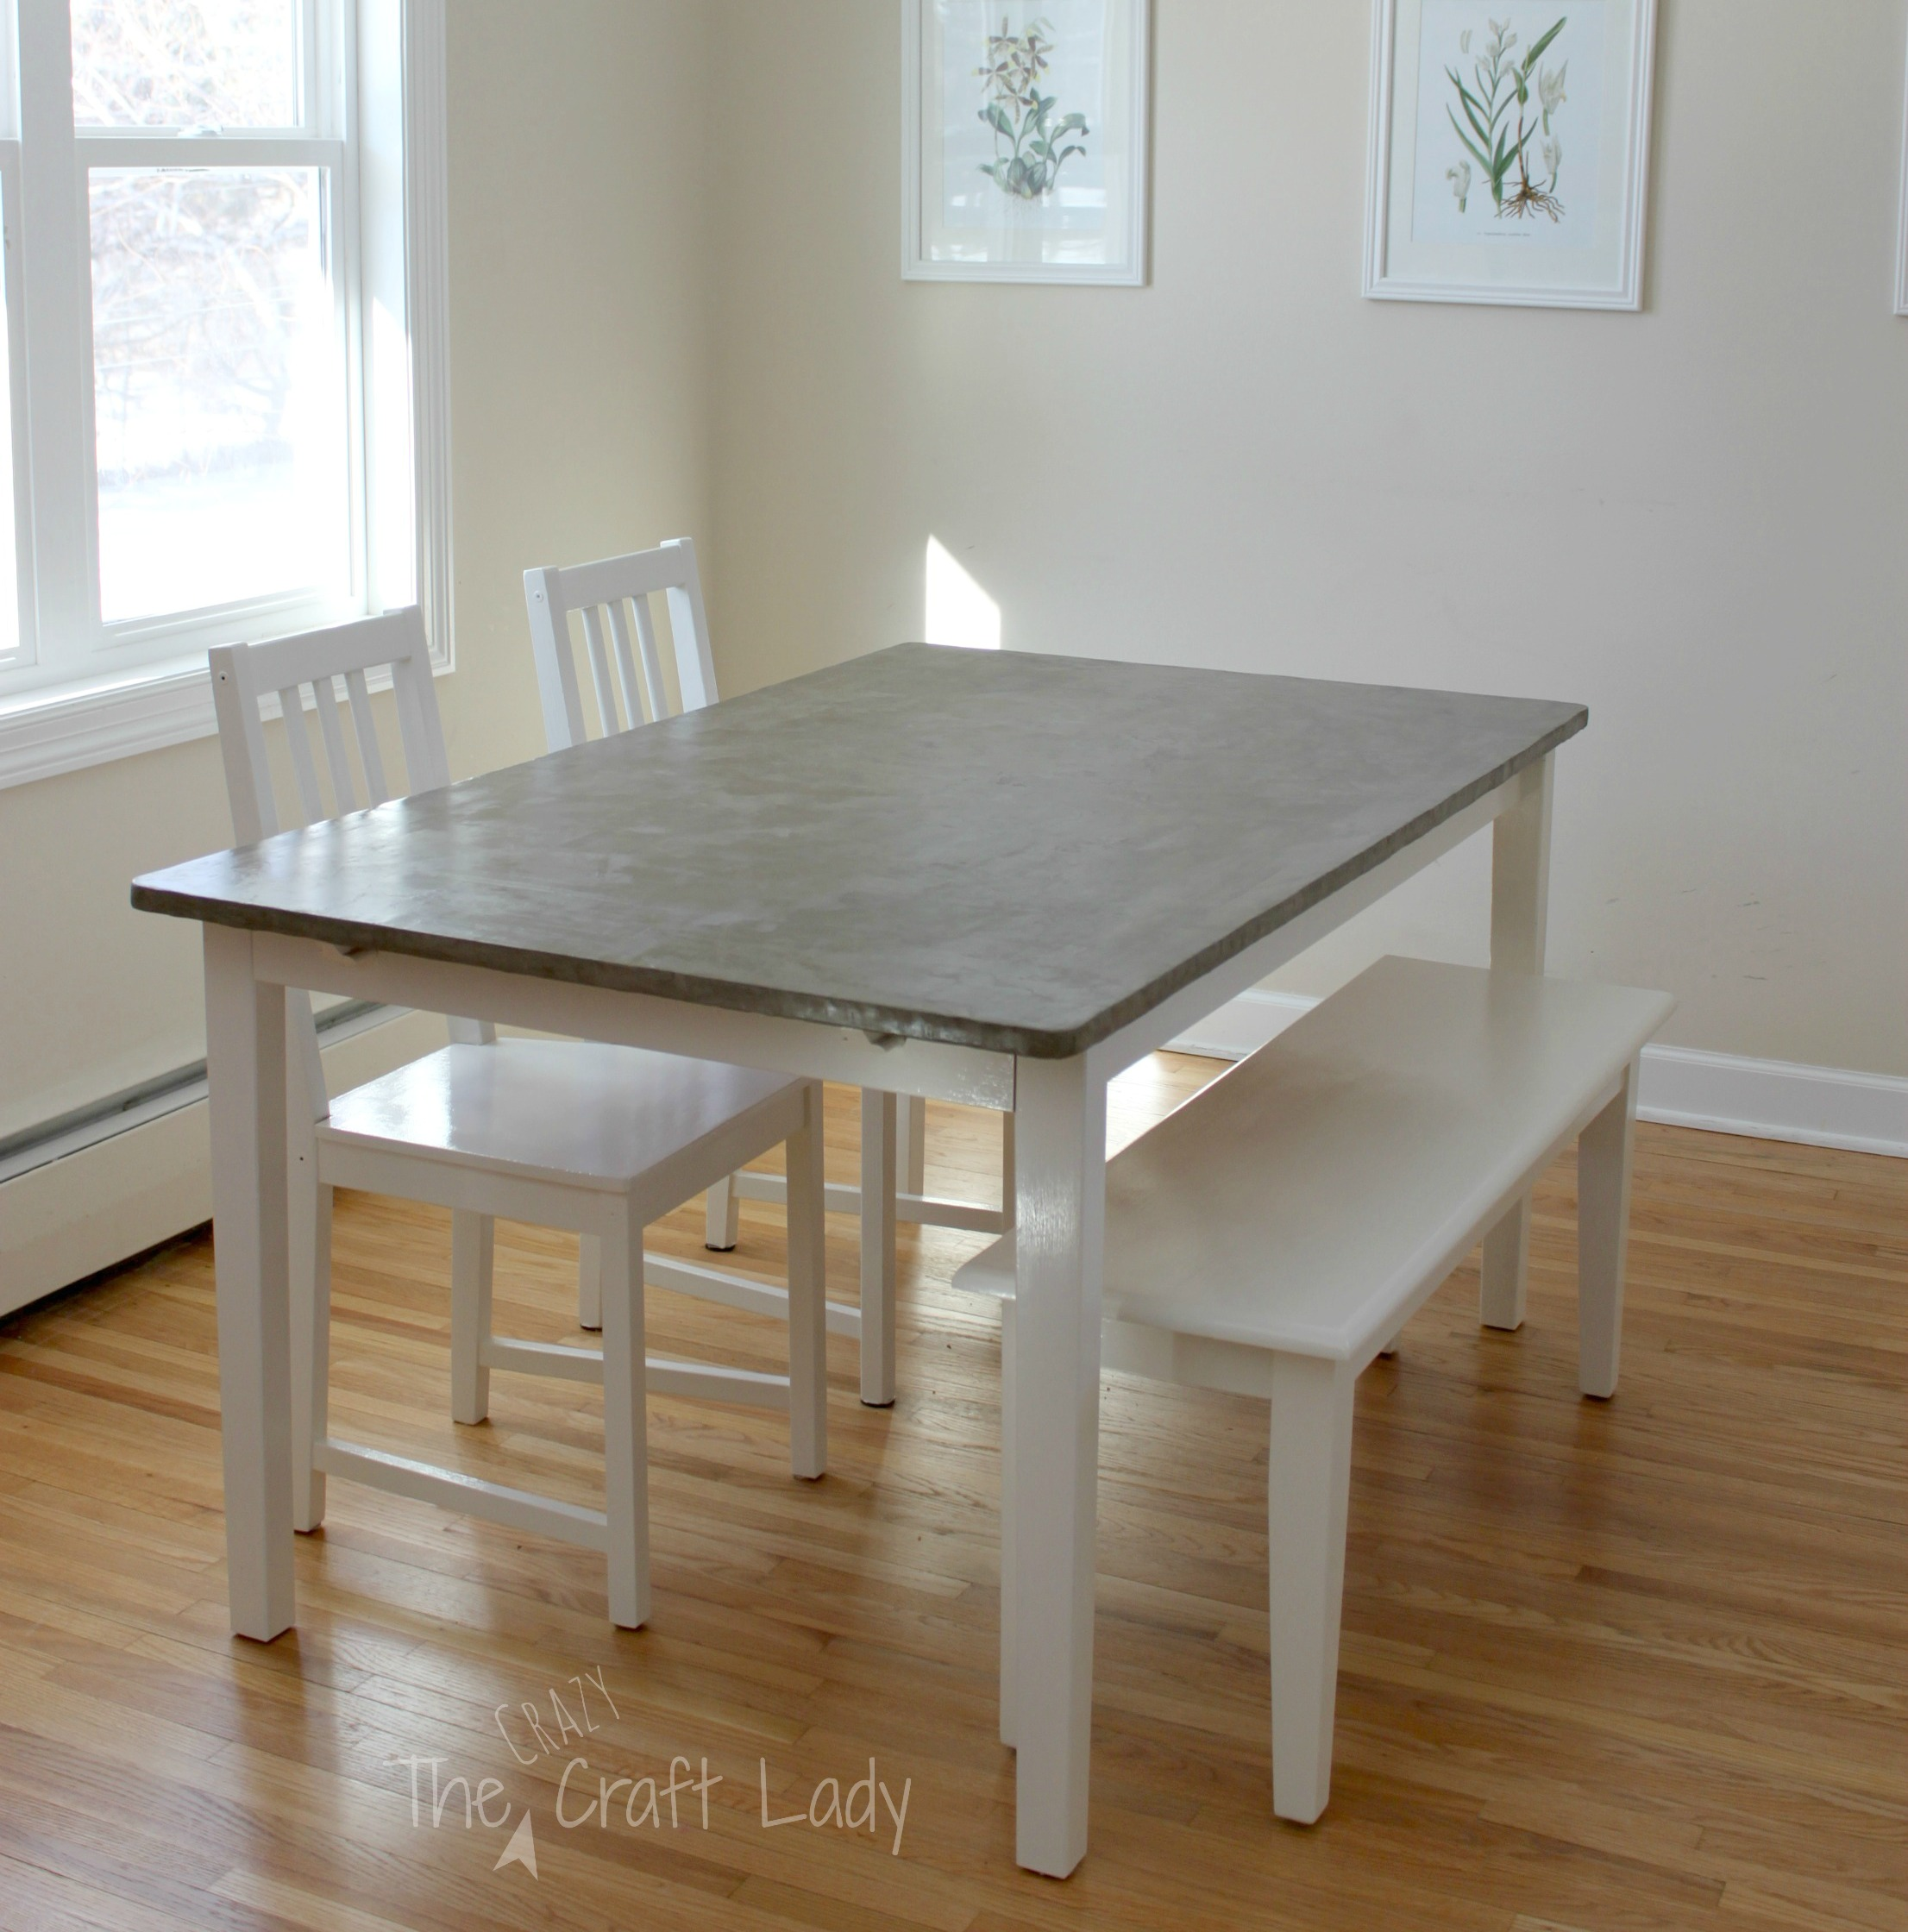 Granite Kitchen Table And Chairs Small Kitchen Table And Chairs Ideas 3piece Small Kitchen Table